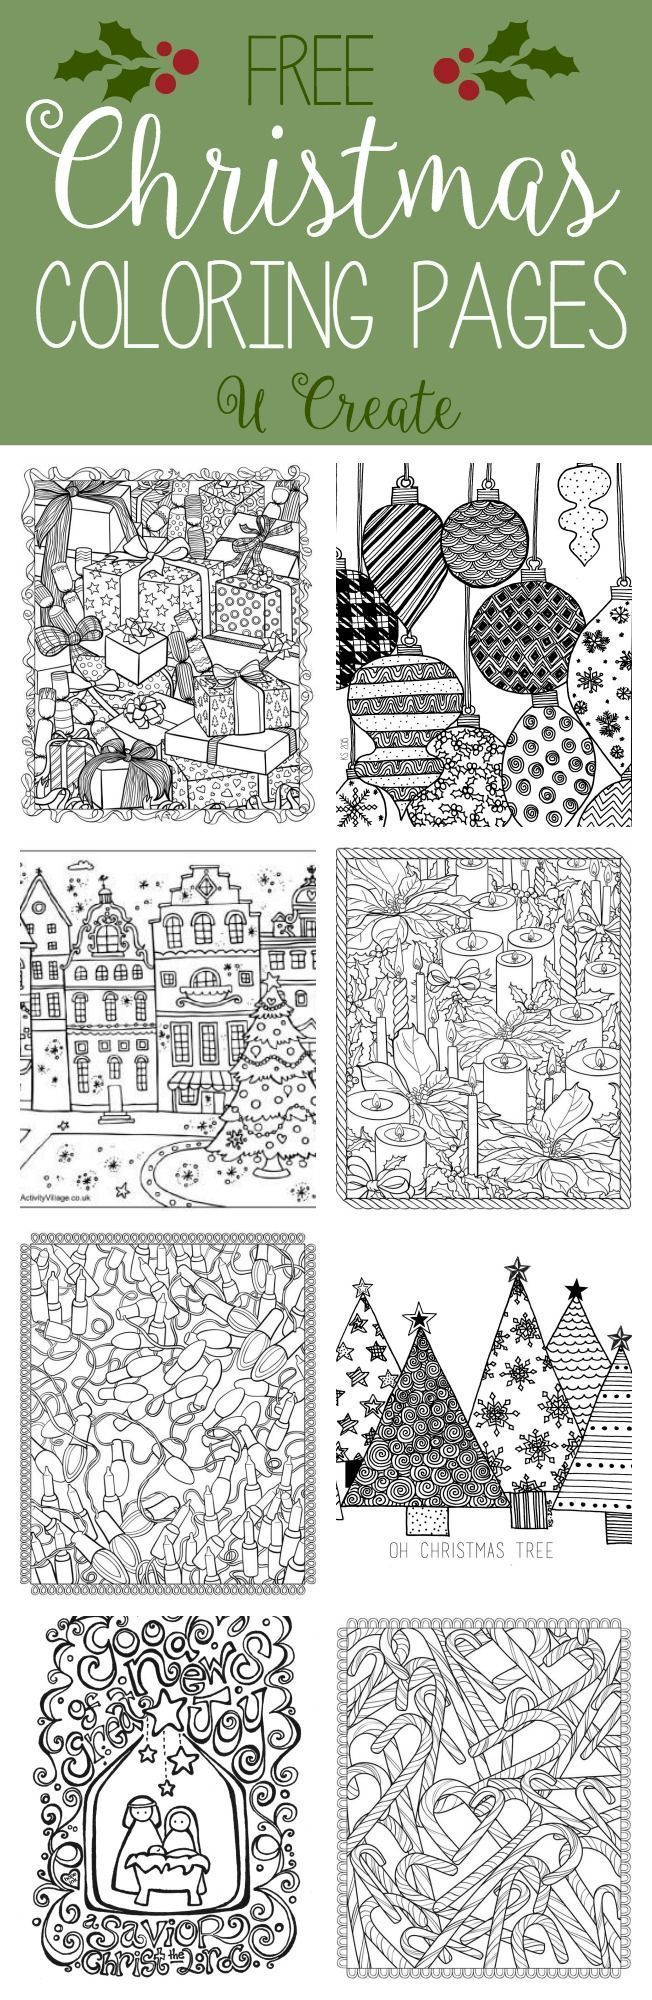 Christmas DIY Free Adult Coloring Pages At U Create